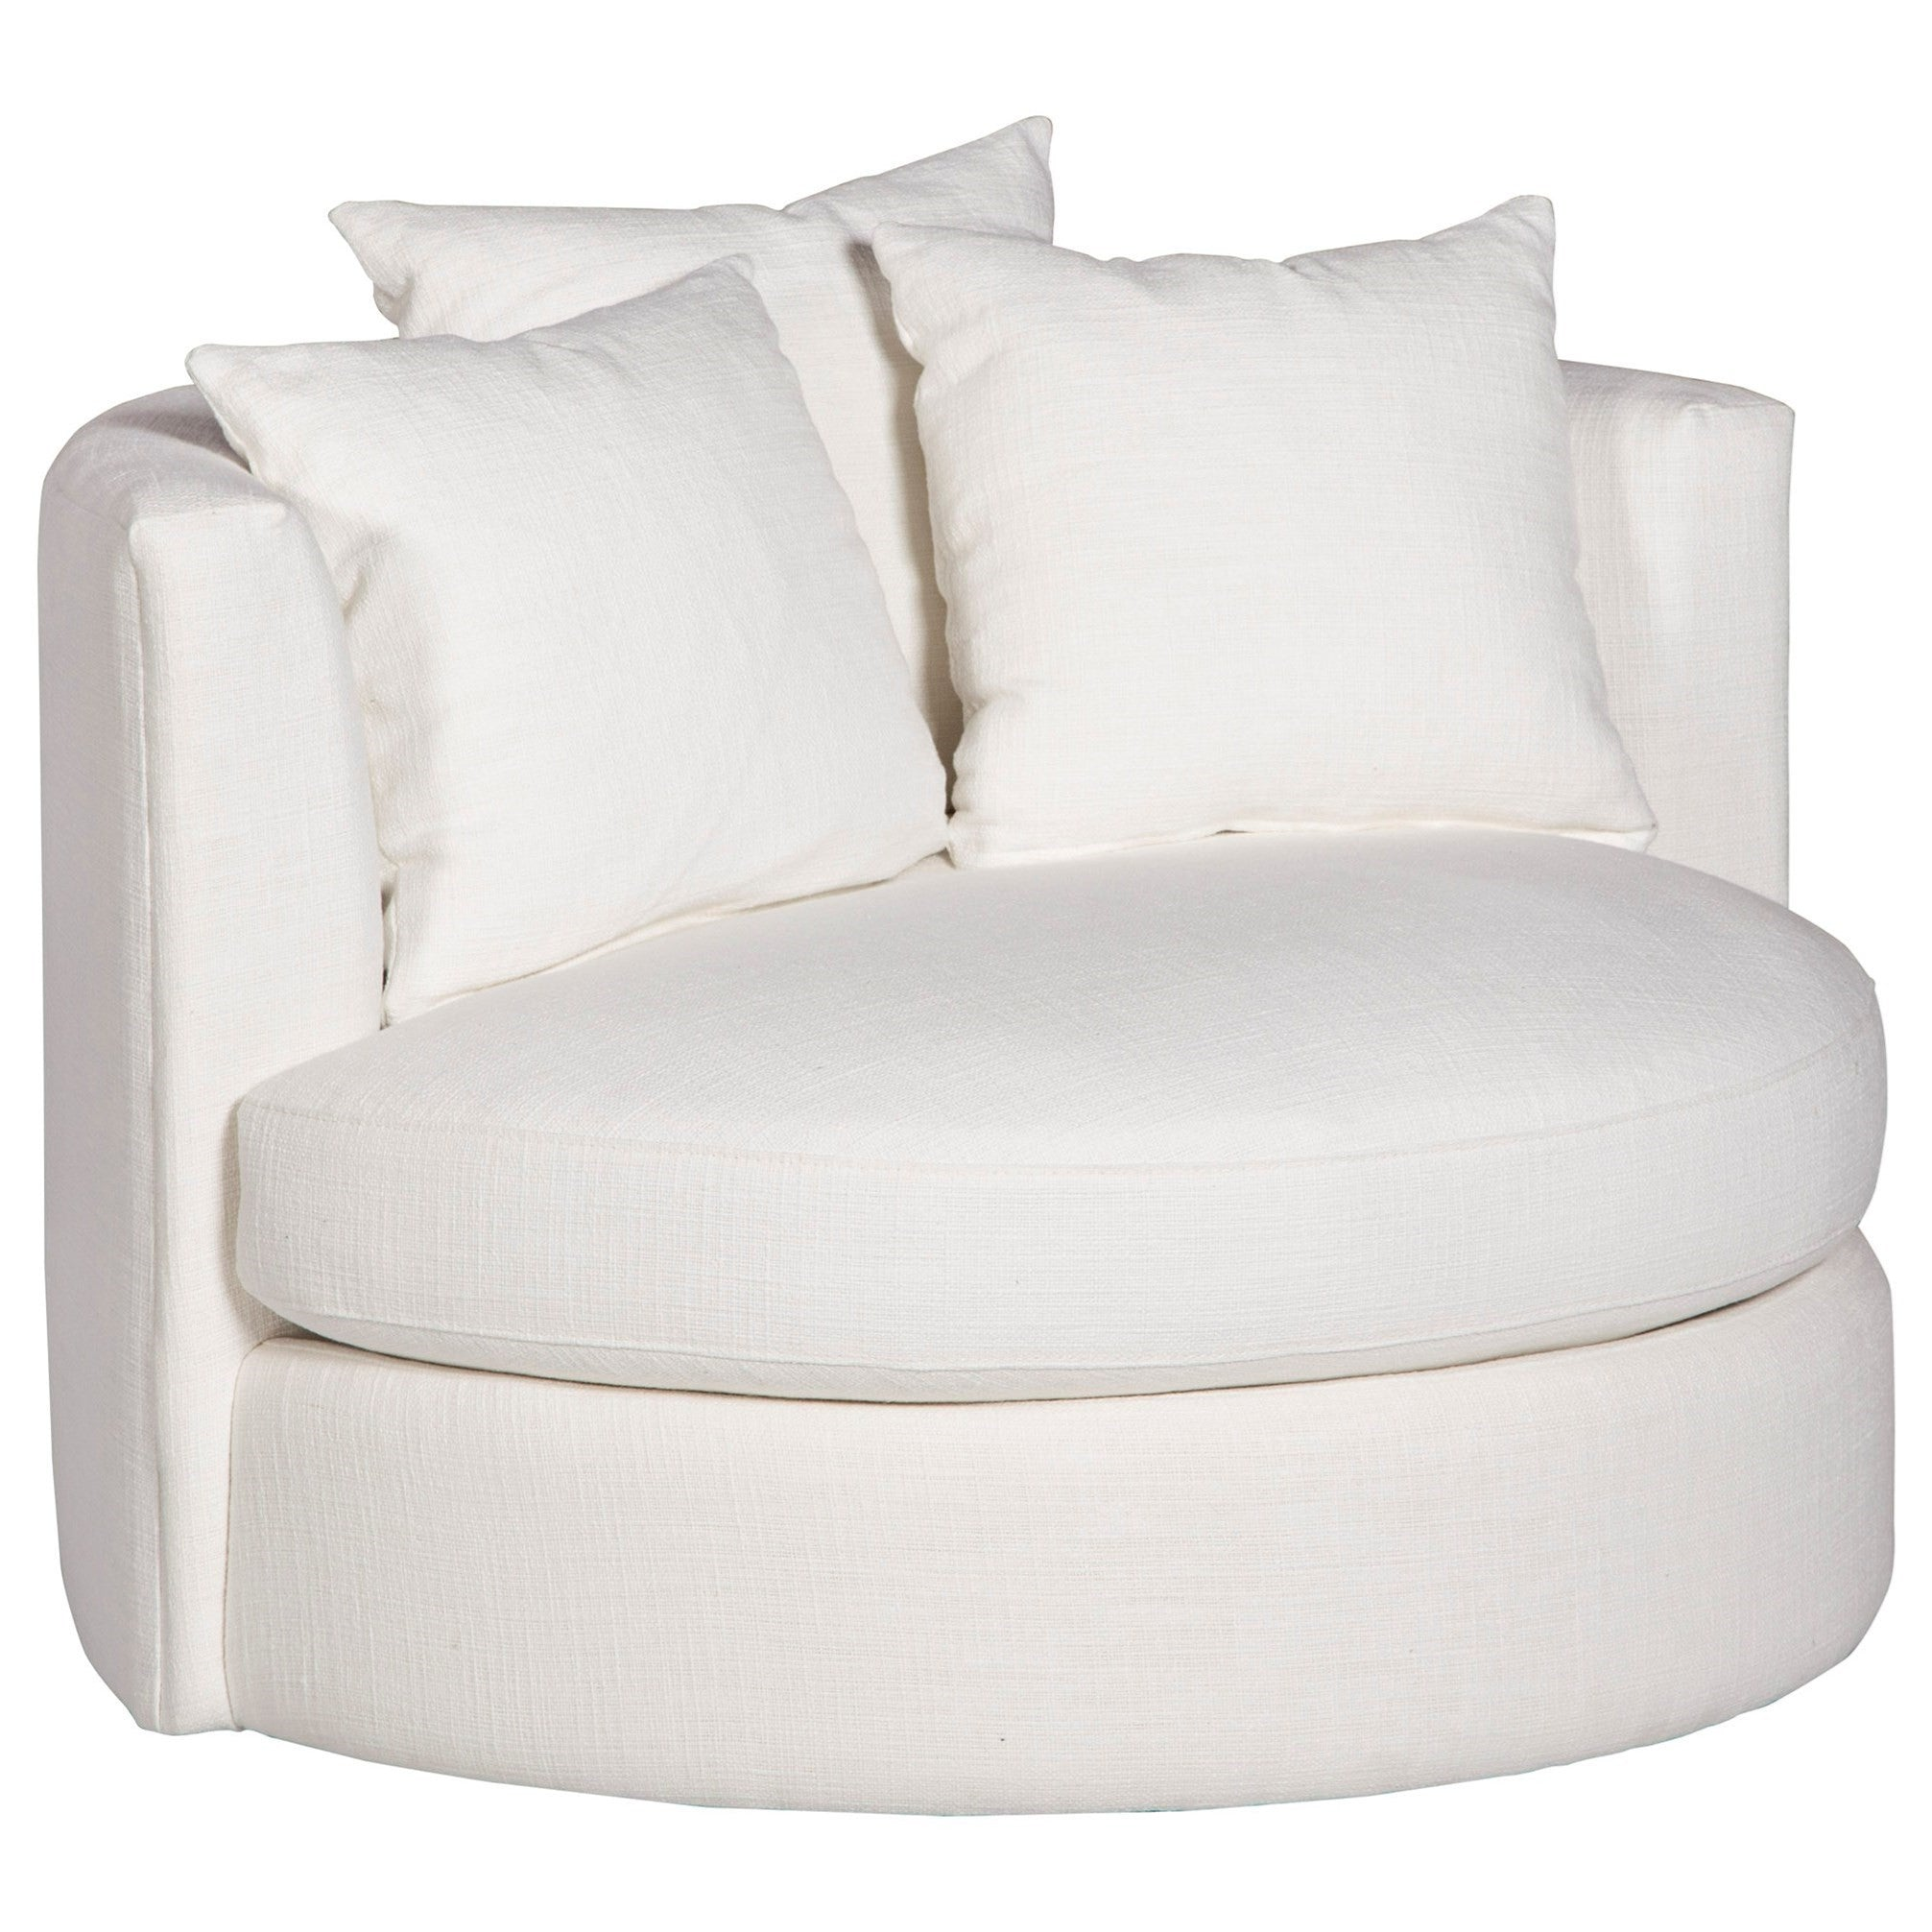 Contemporary Round Swivel Chair Choose Your Fabric – Interior